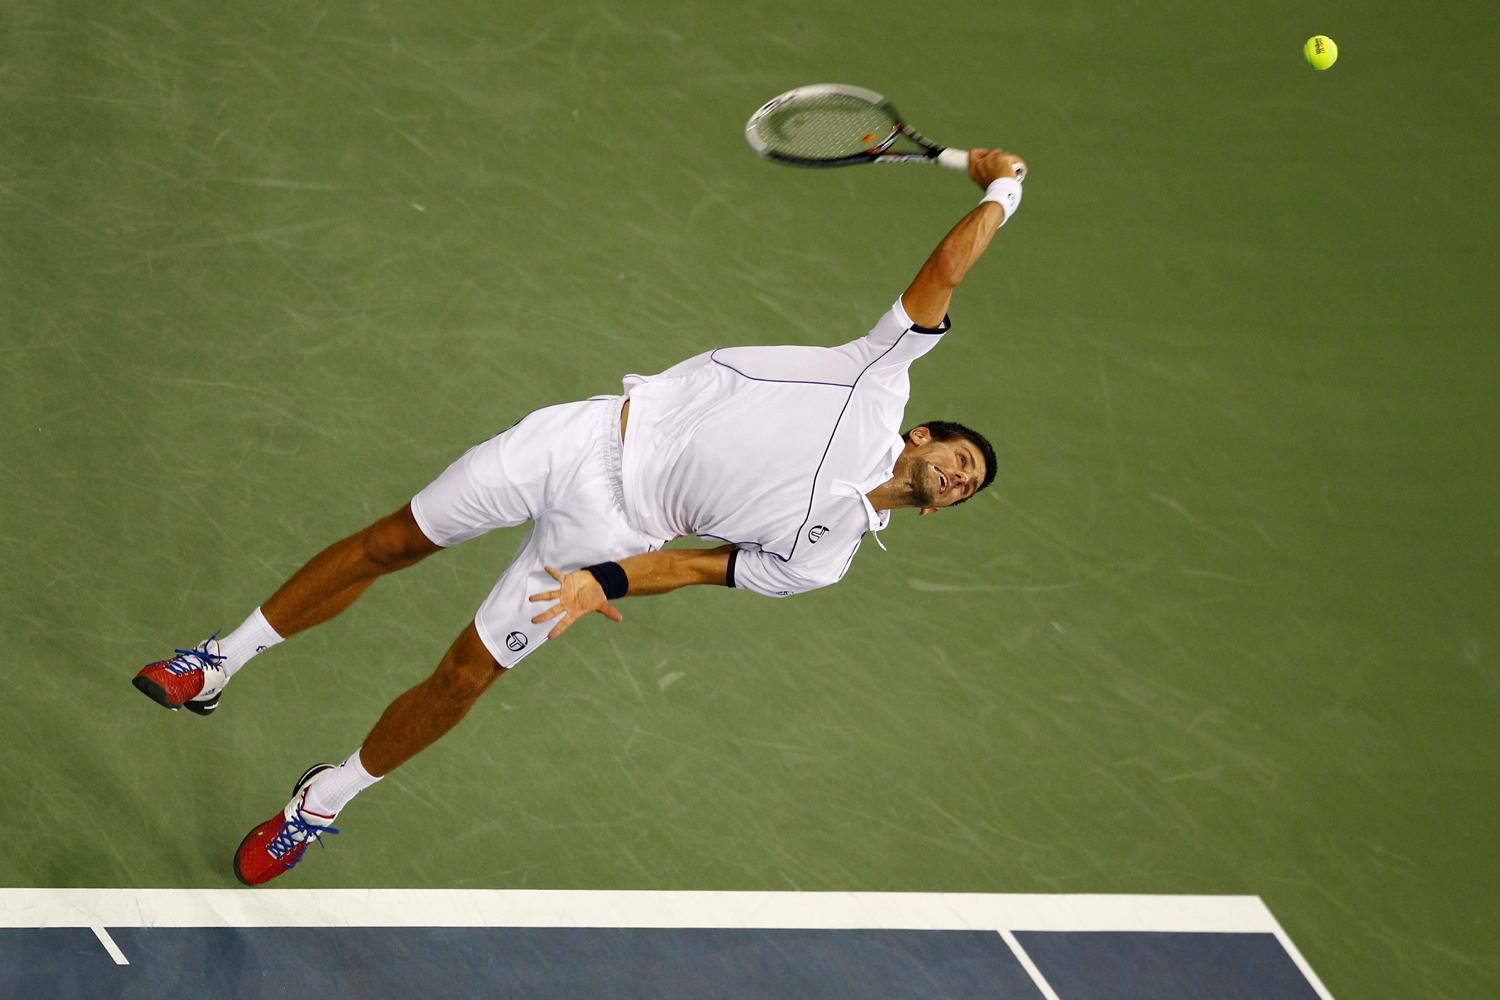 September 12, 2011. Novak Djokovic of Serbia serves during the final of the Men's Singles round at the U.S. Tennis Open in New York.